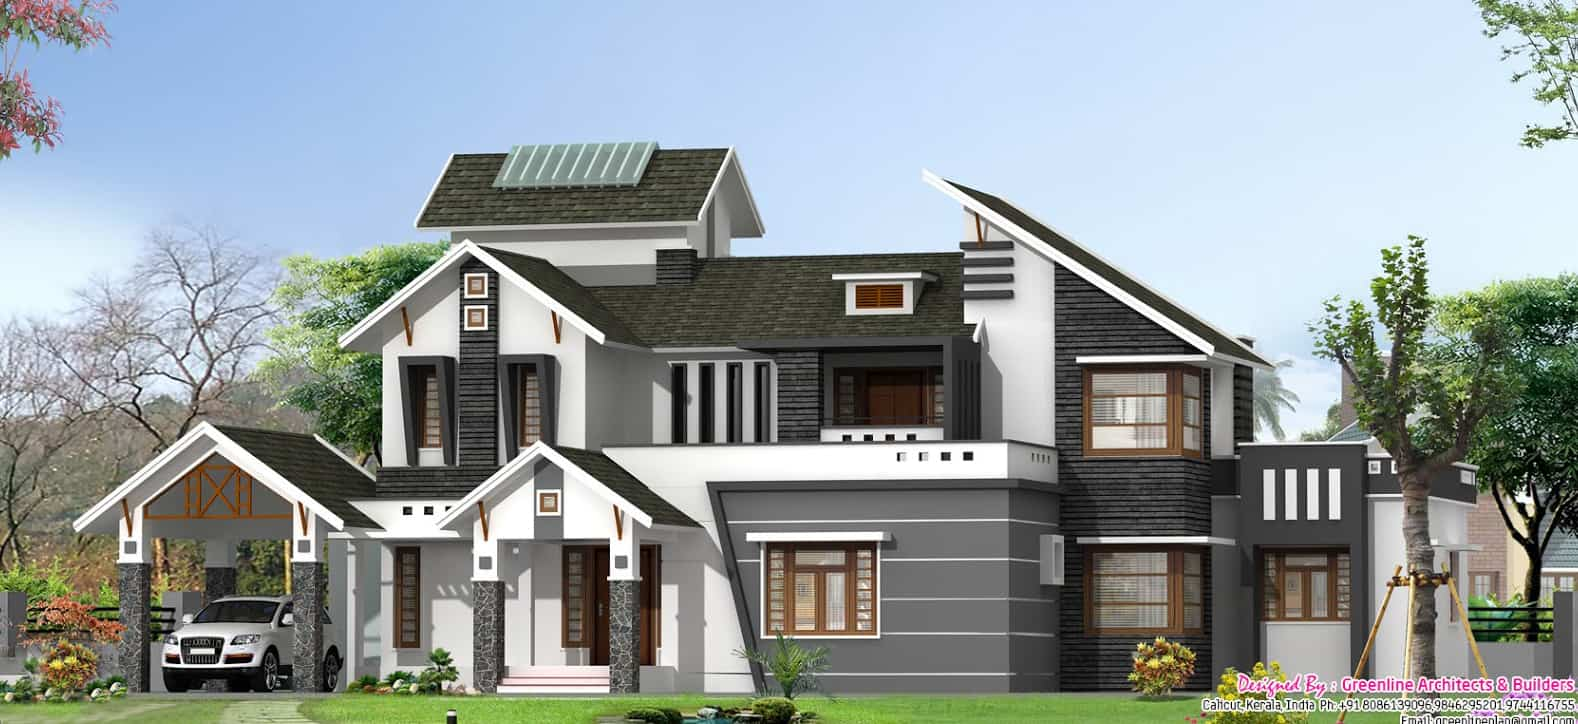 Unique house designs keralahouseplanner for New latest house design